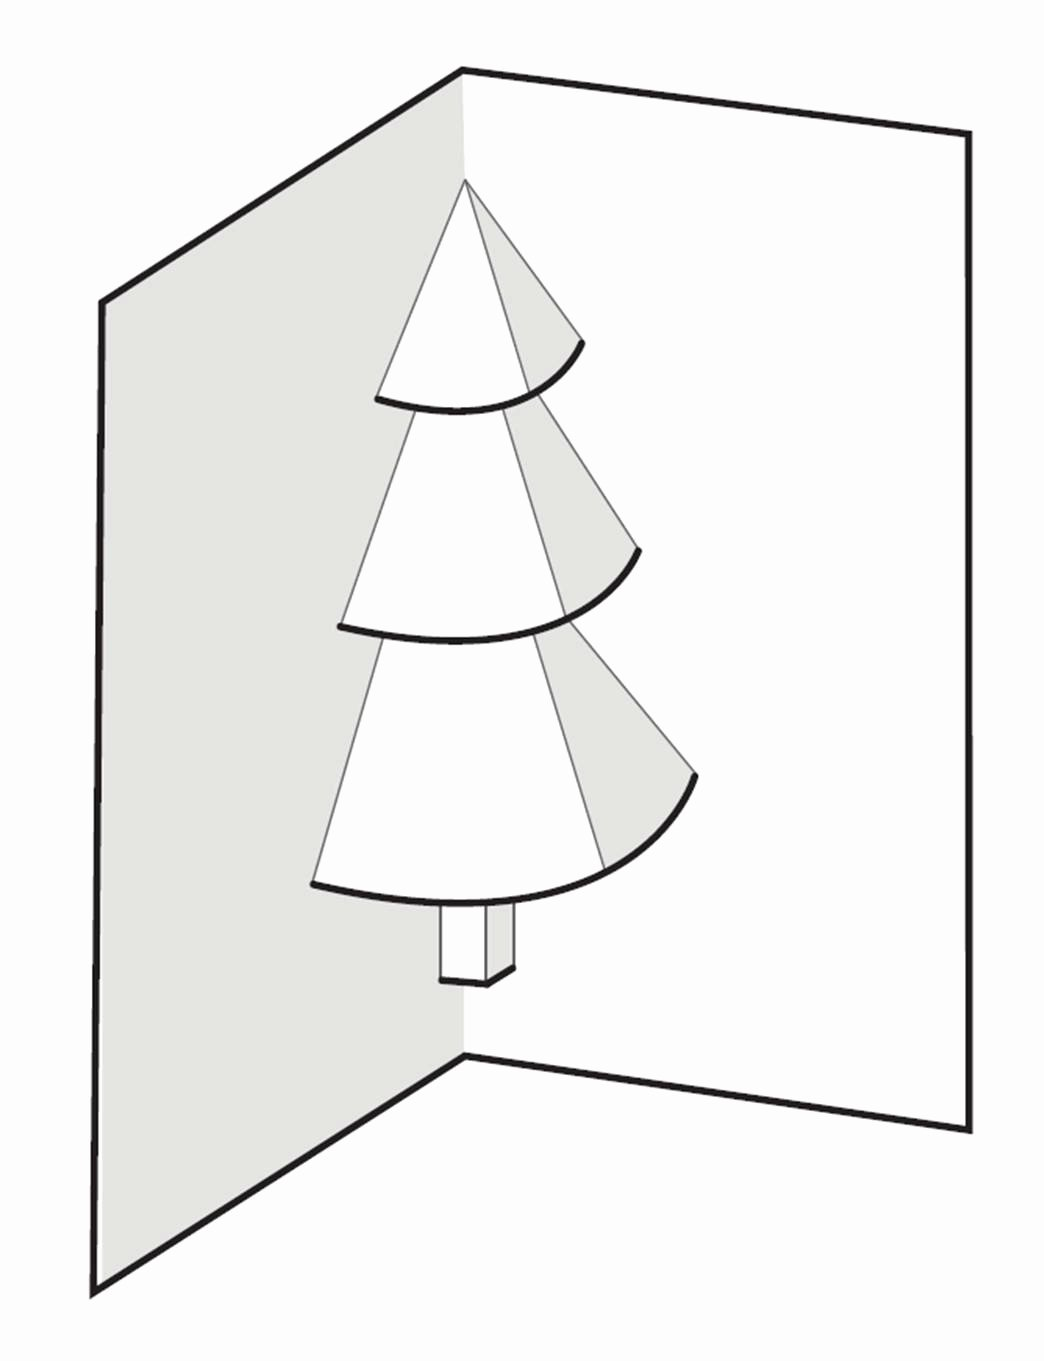 Popup Christmas Card Template Fresh How to Make A Pop Up Christmas Tree Card 6 Steps